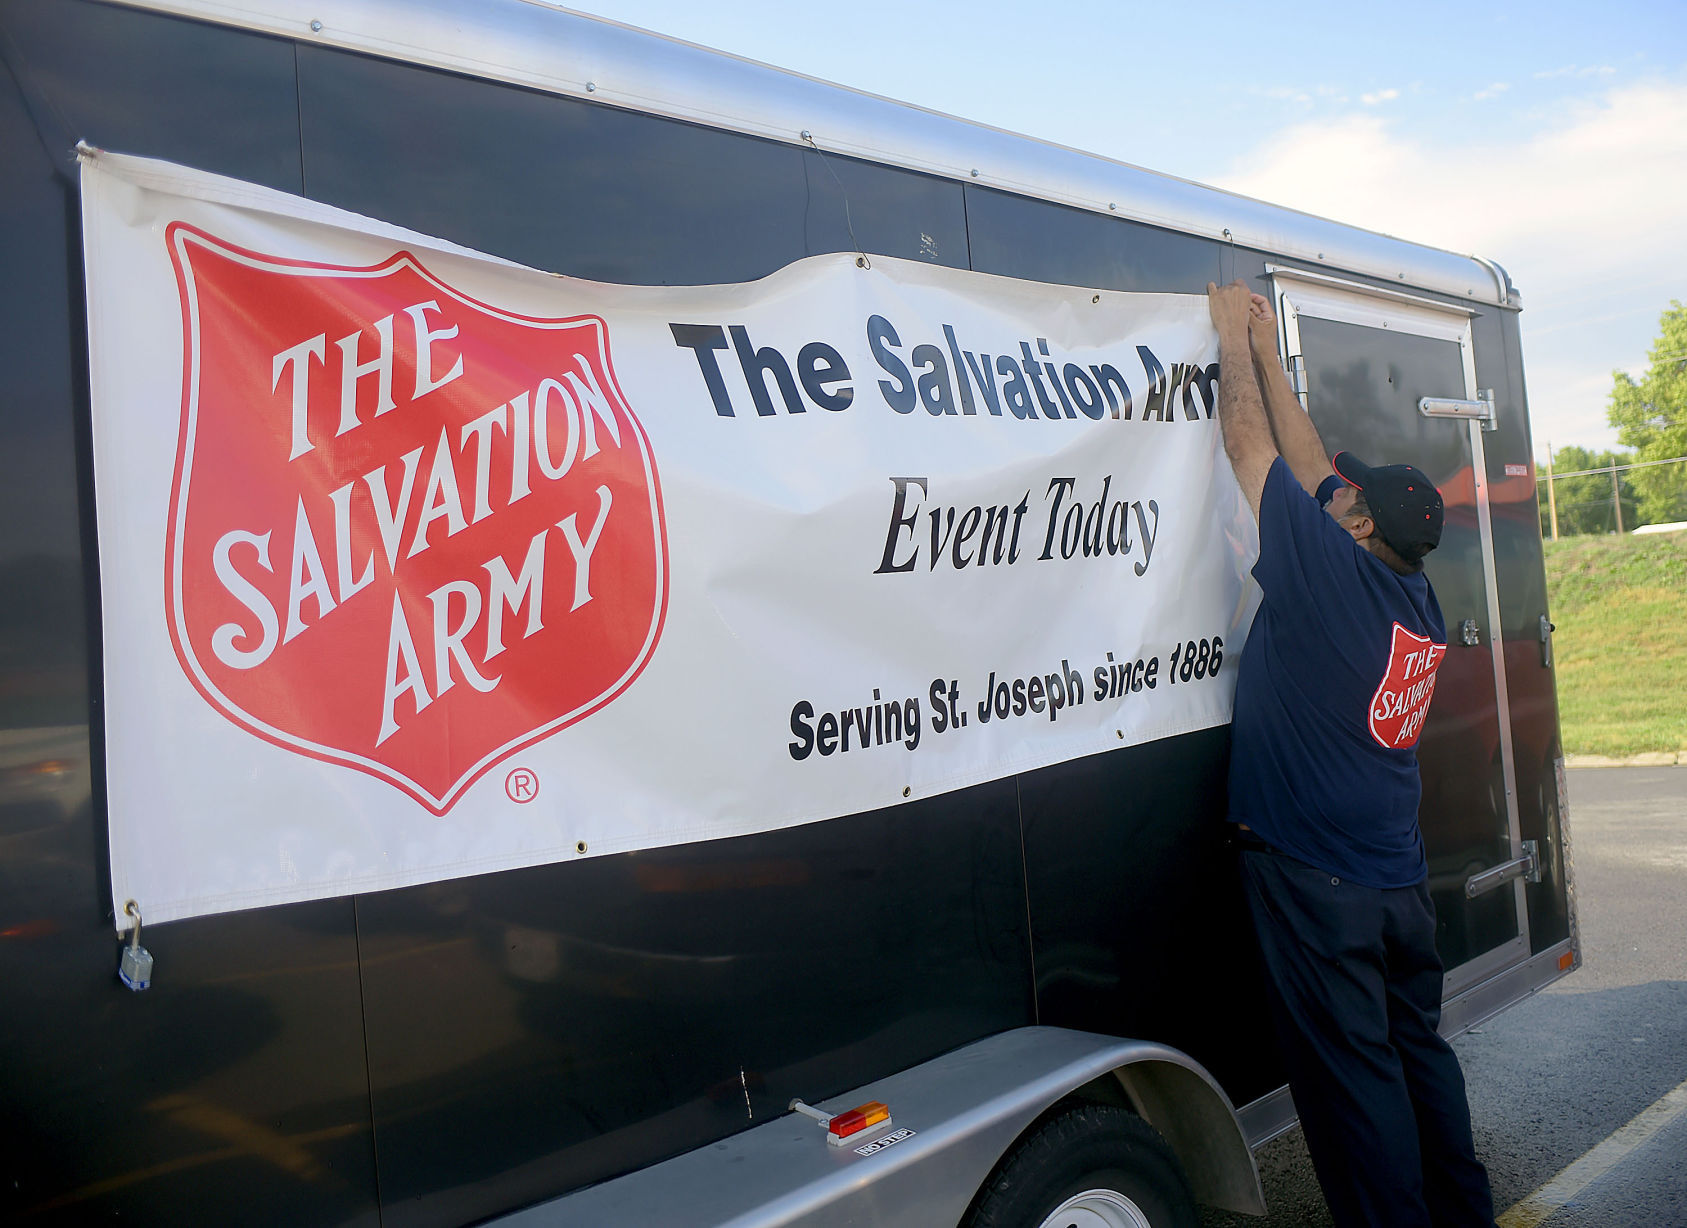 Temple Salvation Army continues pre-screening for Angel Tree until October 20